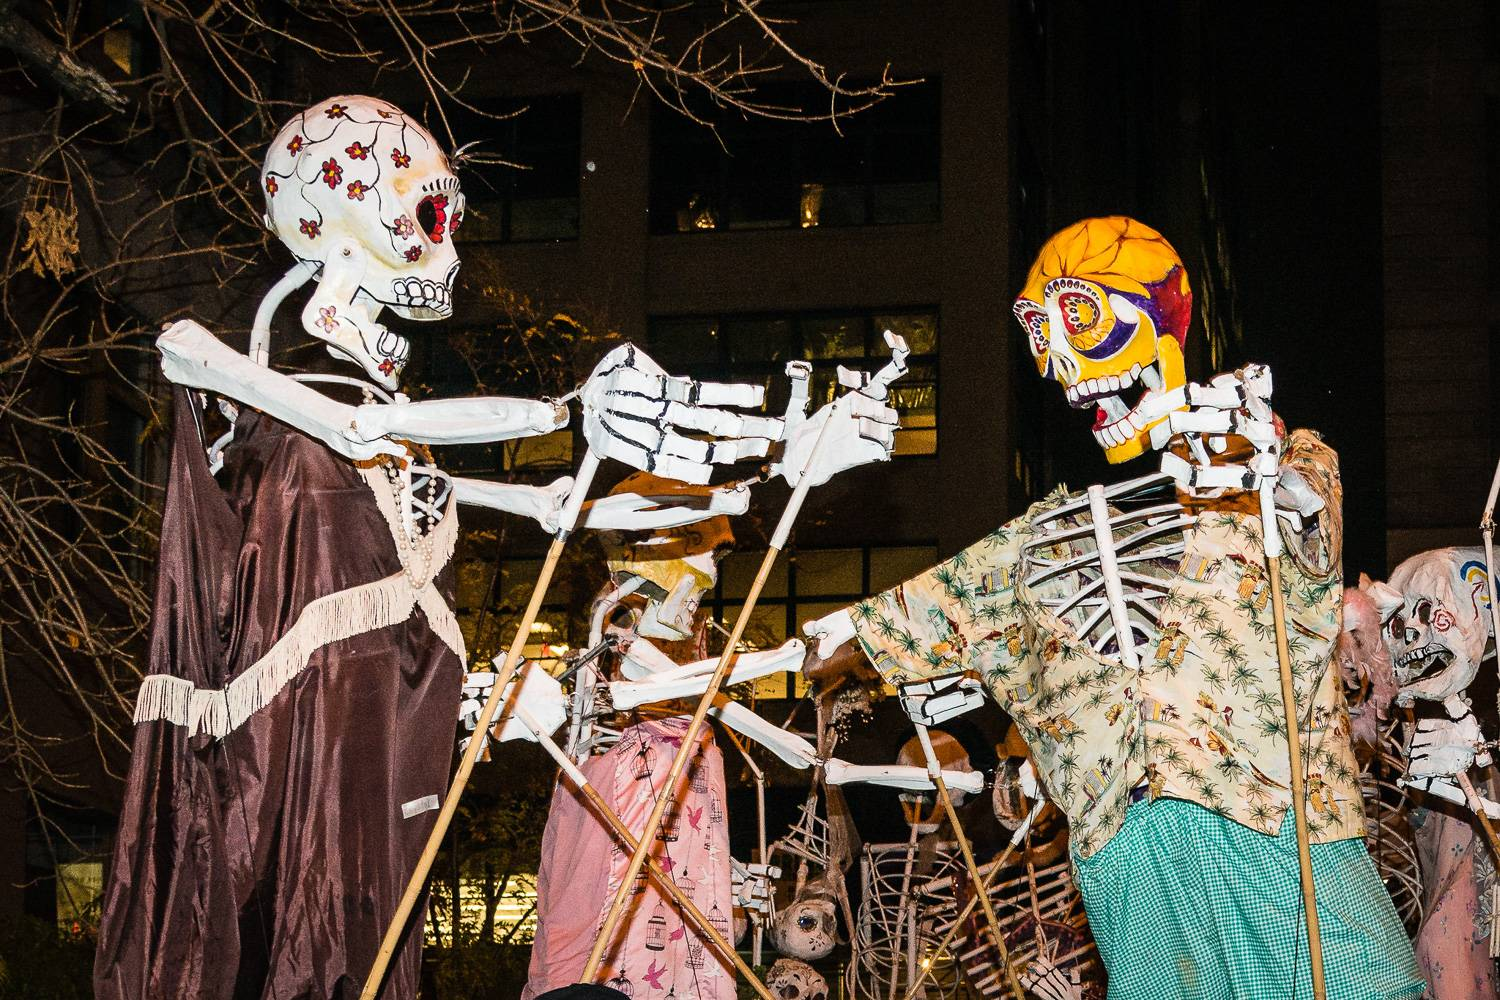 An image of painted skeletons during the Village Parade in New York City's Greenwich Village.